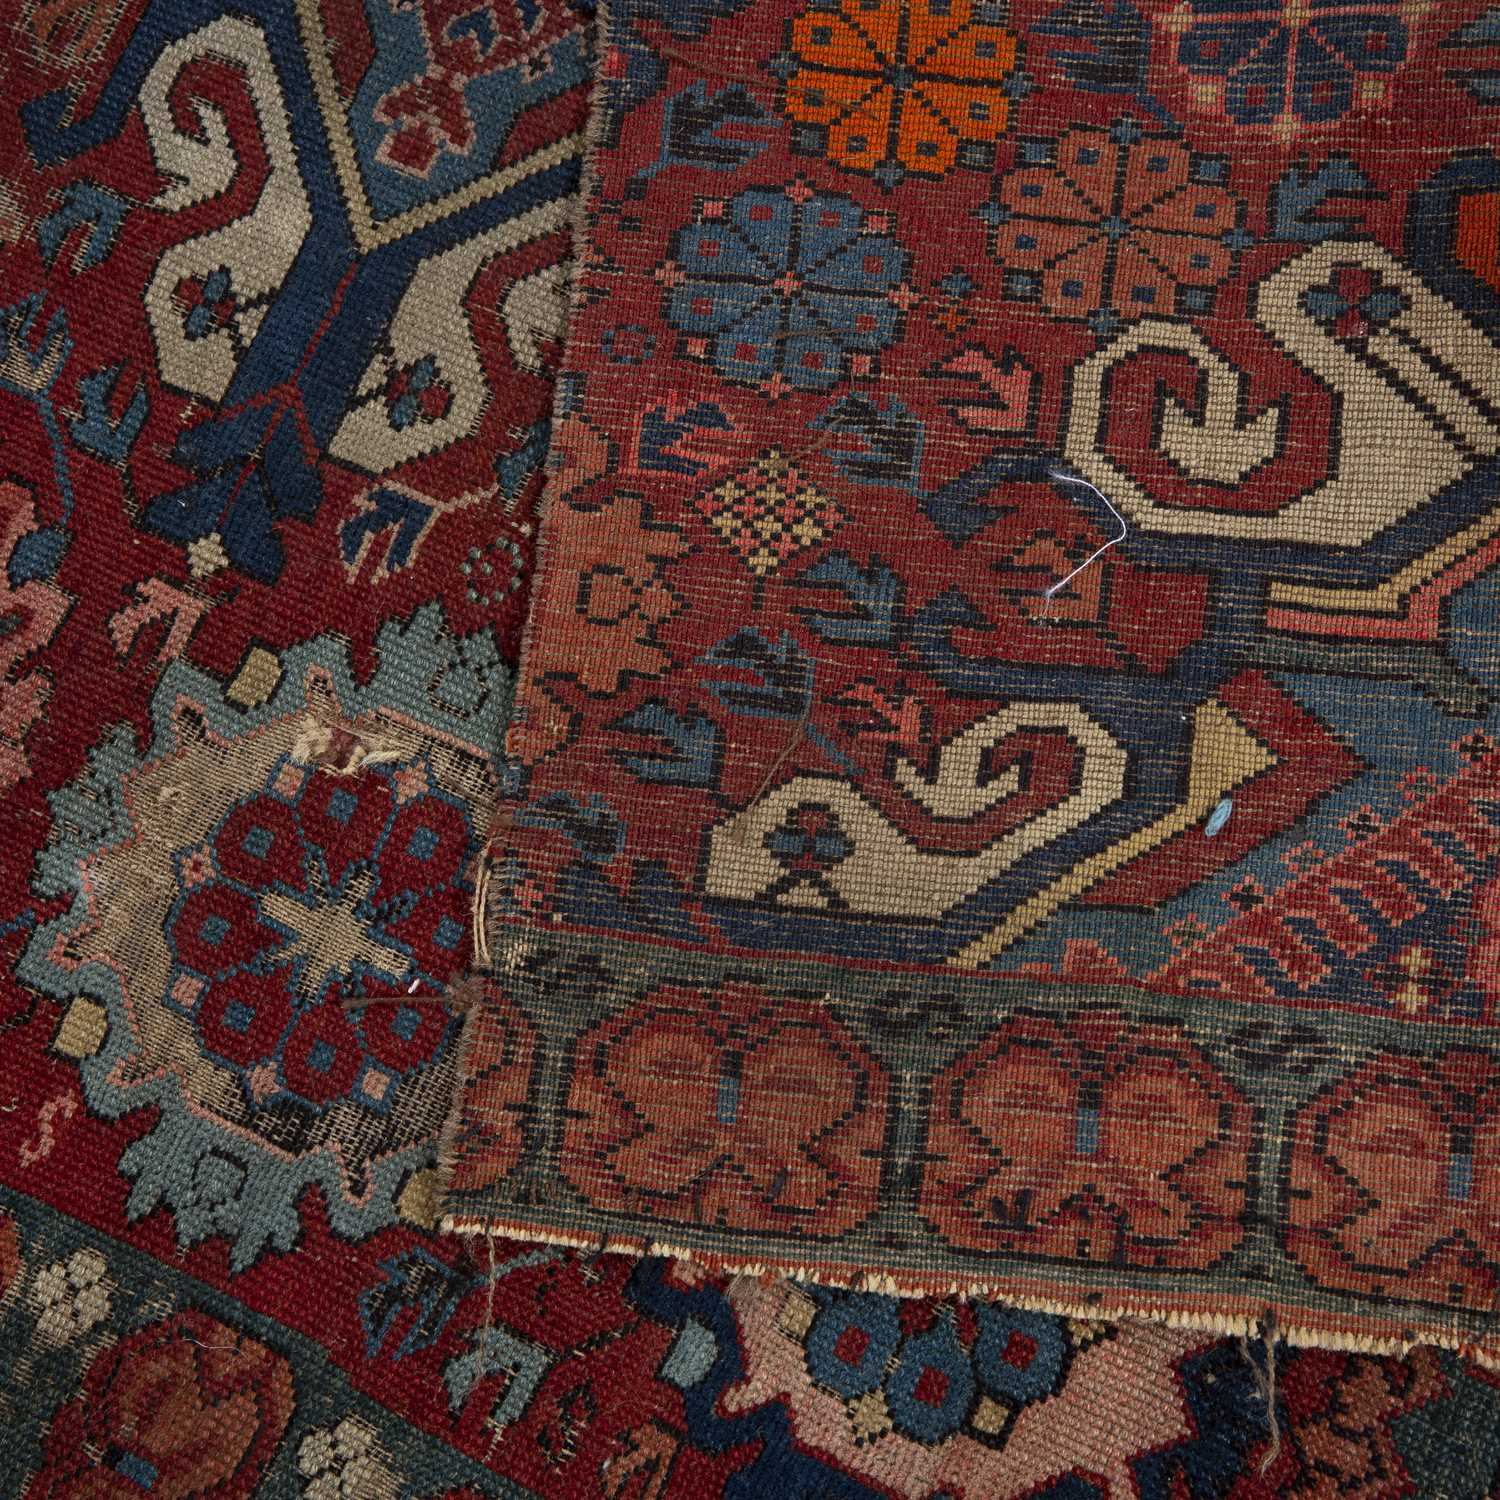 An antique Caucasian Seychor rug fragment with scrolled medallions on a red ground, 156 x 85cm - Image 2 of 2